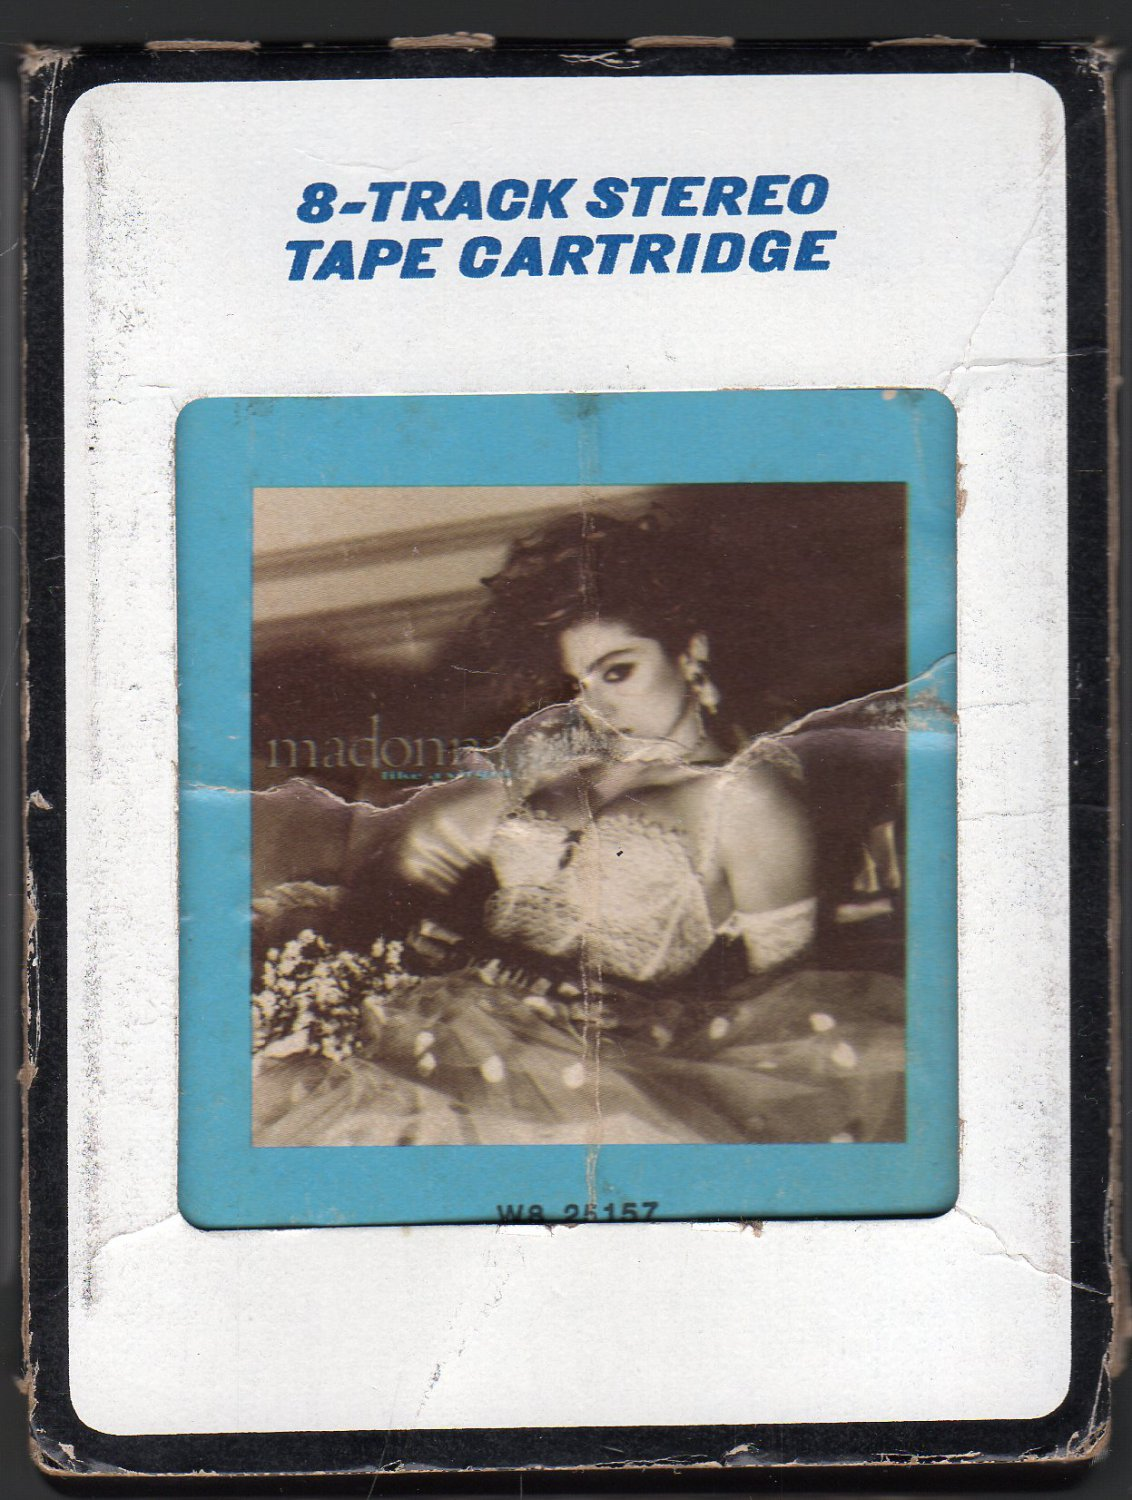 Madonna - Like A Virgin 1984 CRC A42 8-TRACK TAPE